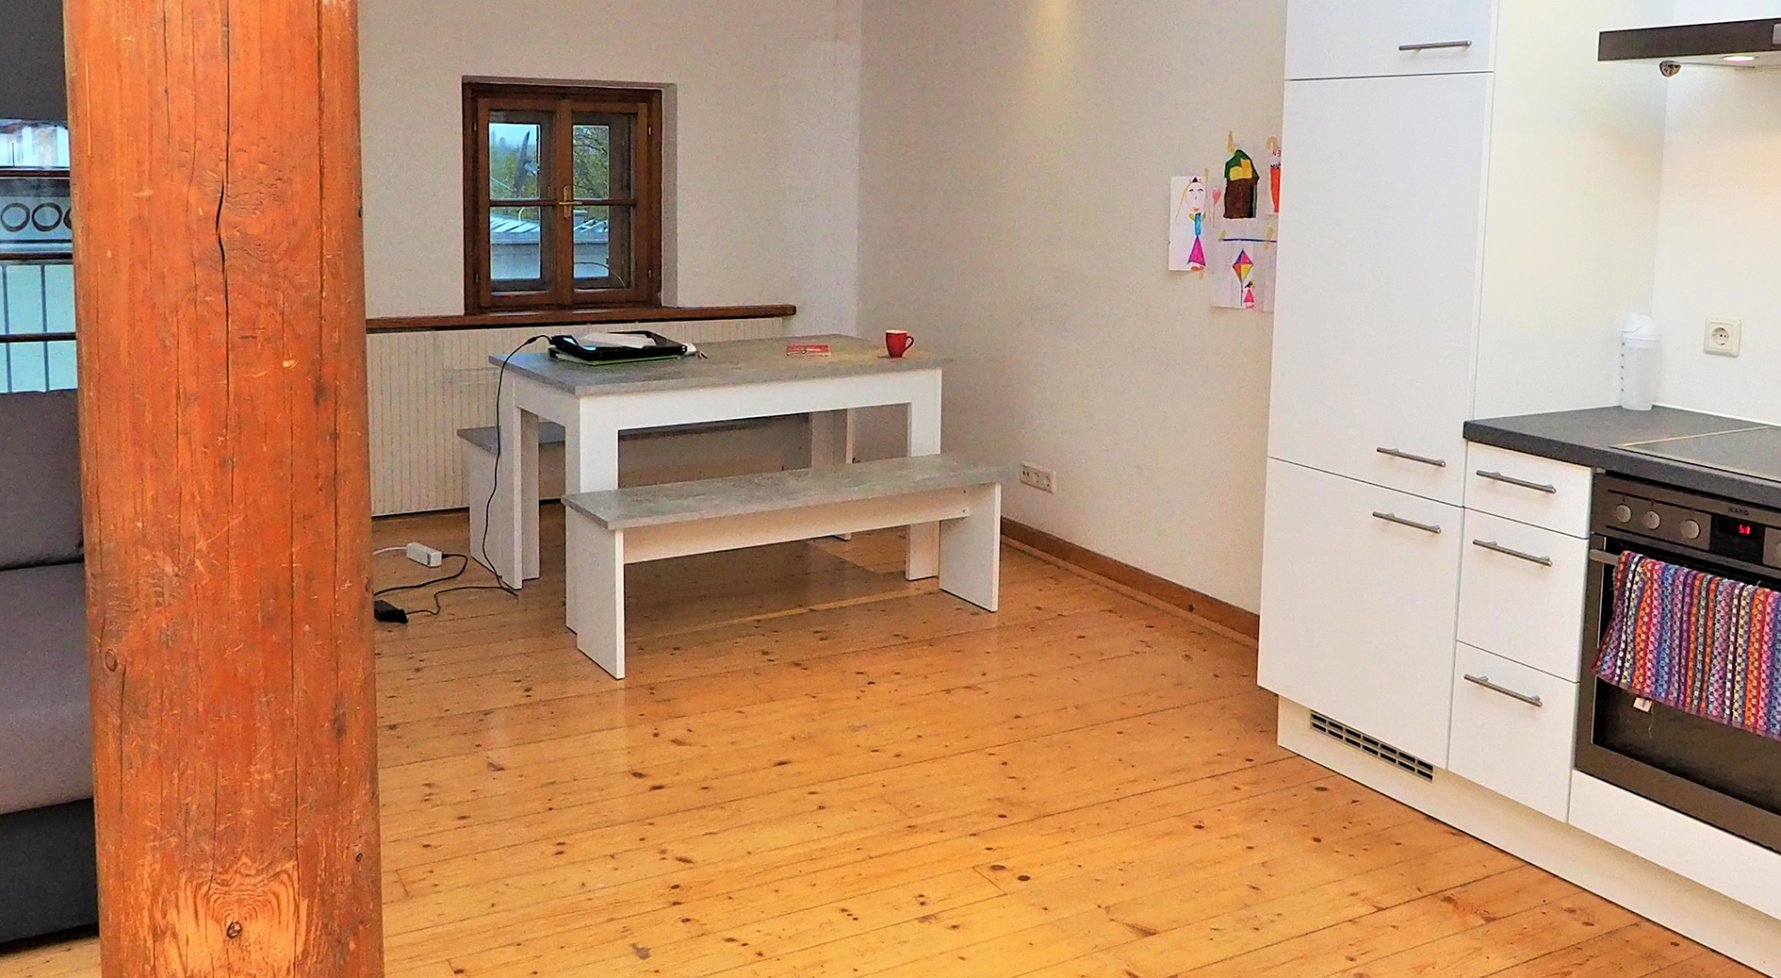 Property in 5020 Innenstadtlage Salzburg - Mülln: Secure well-let units in a historic building in Mülln now ... - picture 1